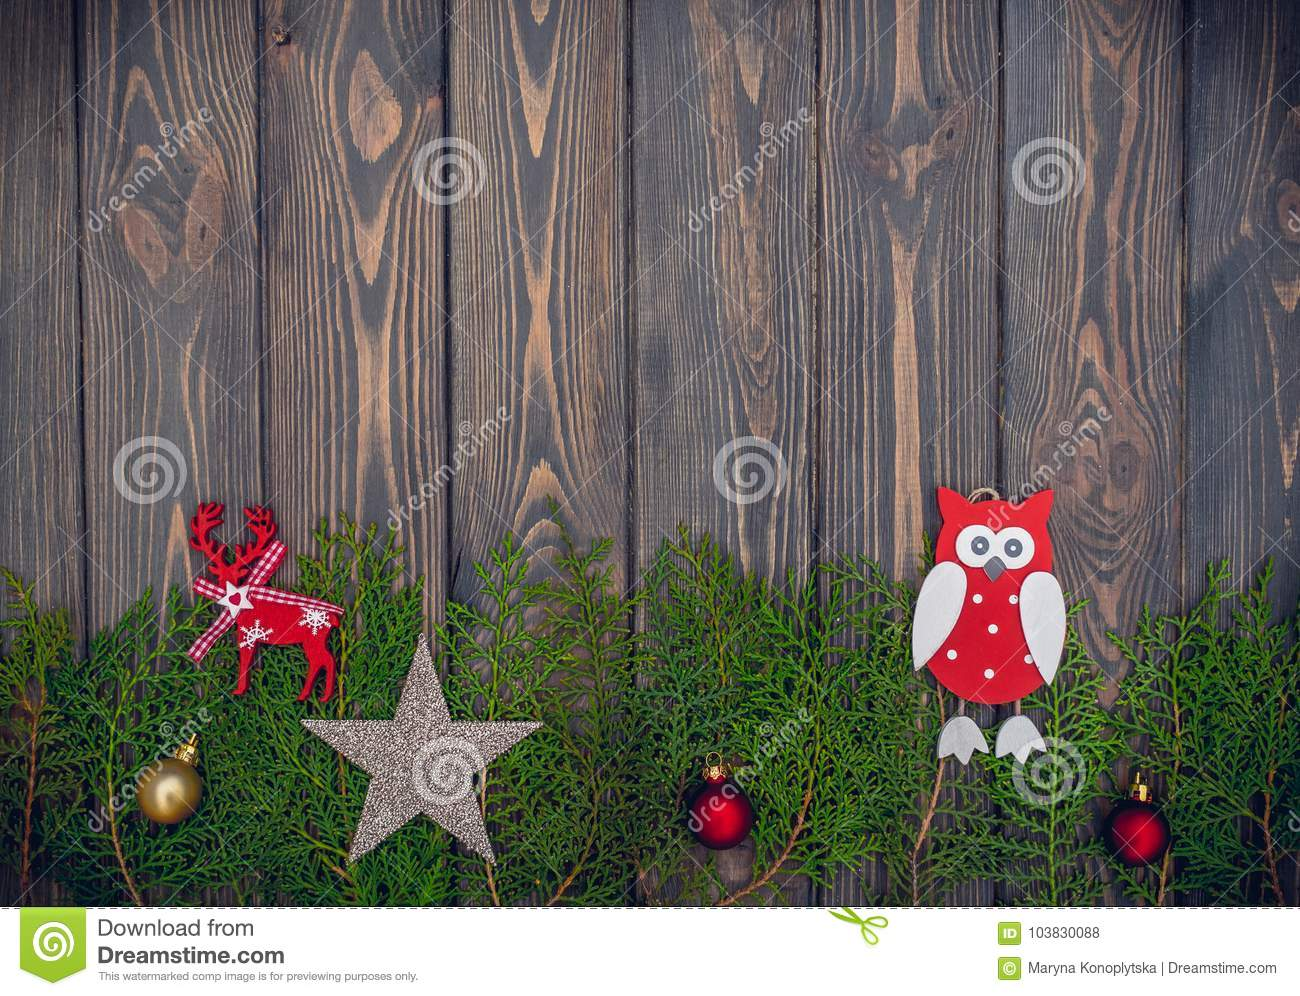 Old fashioned christmas tree toys and old wood background for a old fashioned christmas tree toys and old wood background for a new years greeting card royalty free stock photo download old fashioned christmas kristyandbryce Image collections